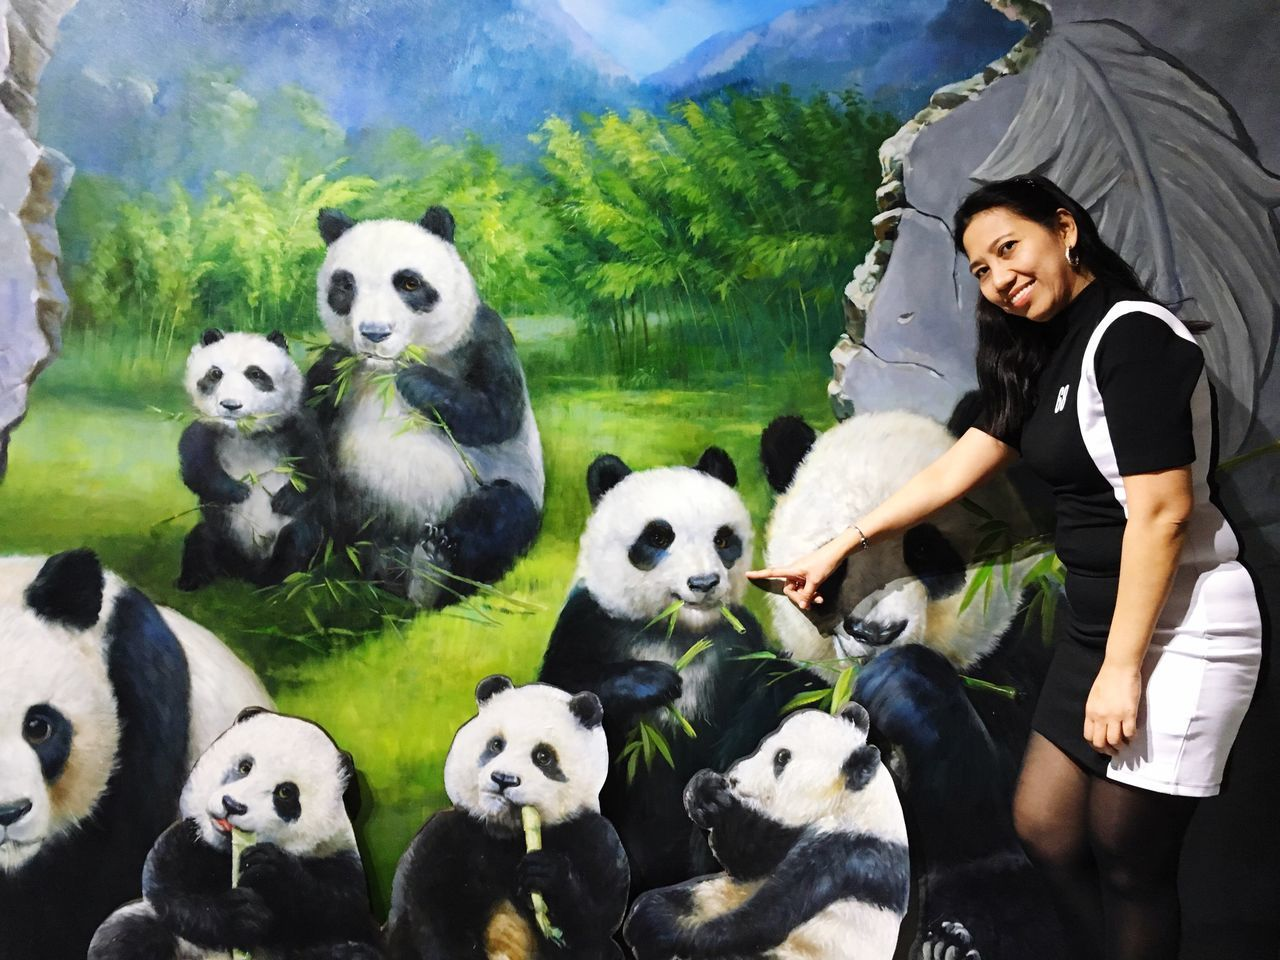 panda - animal, mountain, cute, panda, smiling, looking at camera, cheerful, animal themes, togetherness, happiness, portrait, outdoors, mammal, giant panda, young women, day, young adult, sky, people, adult